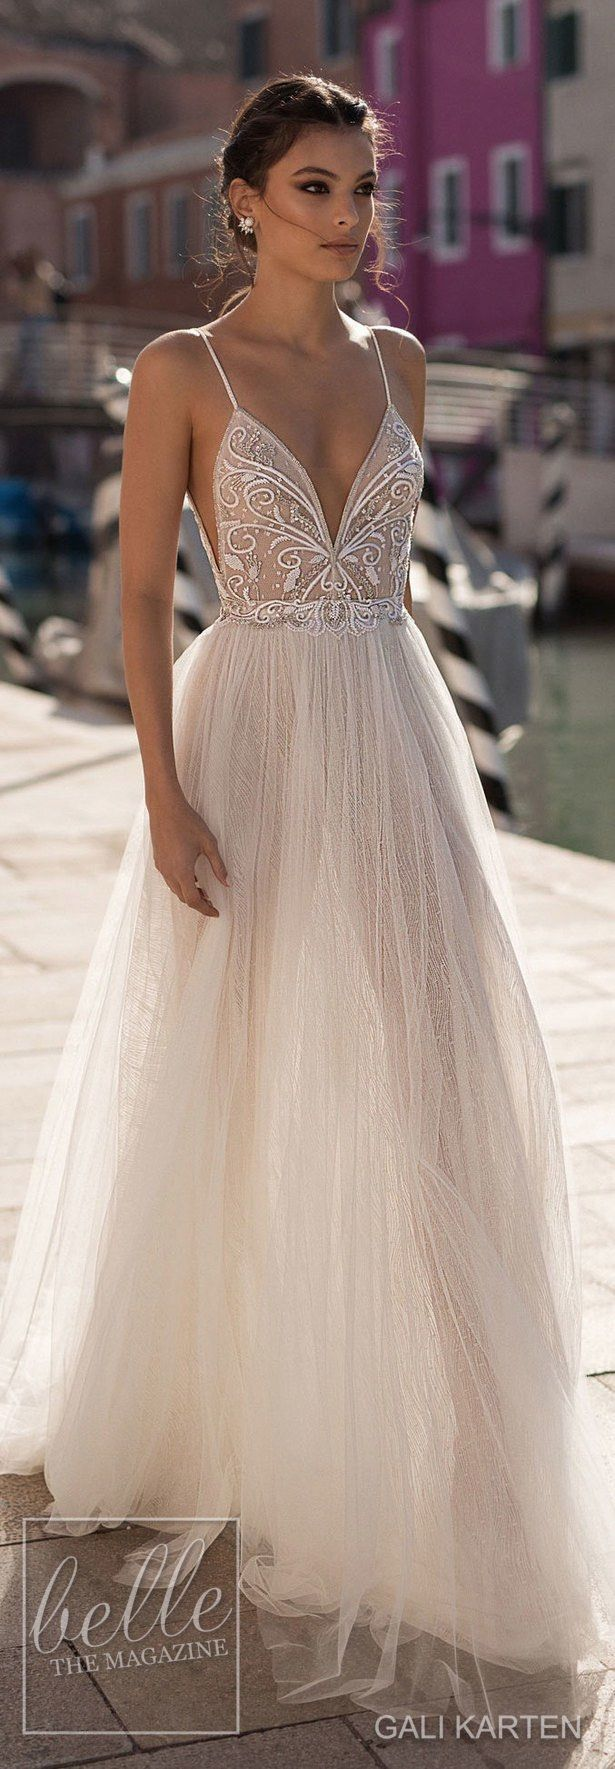 Young thug wedding dress   best Destination images on Pinterest